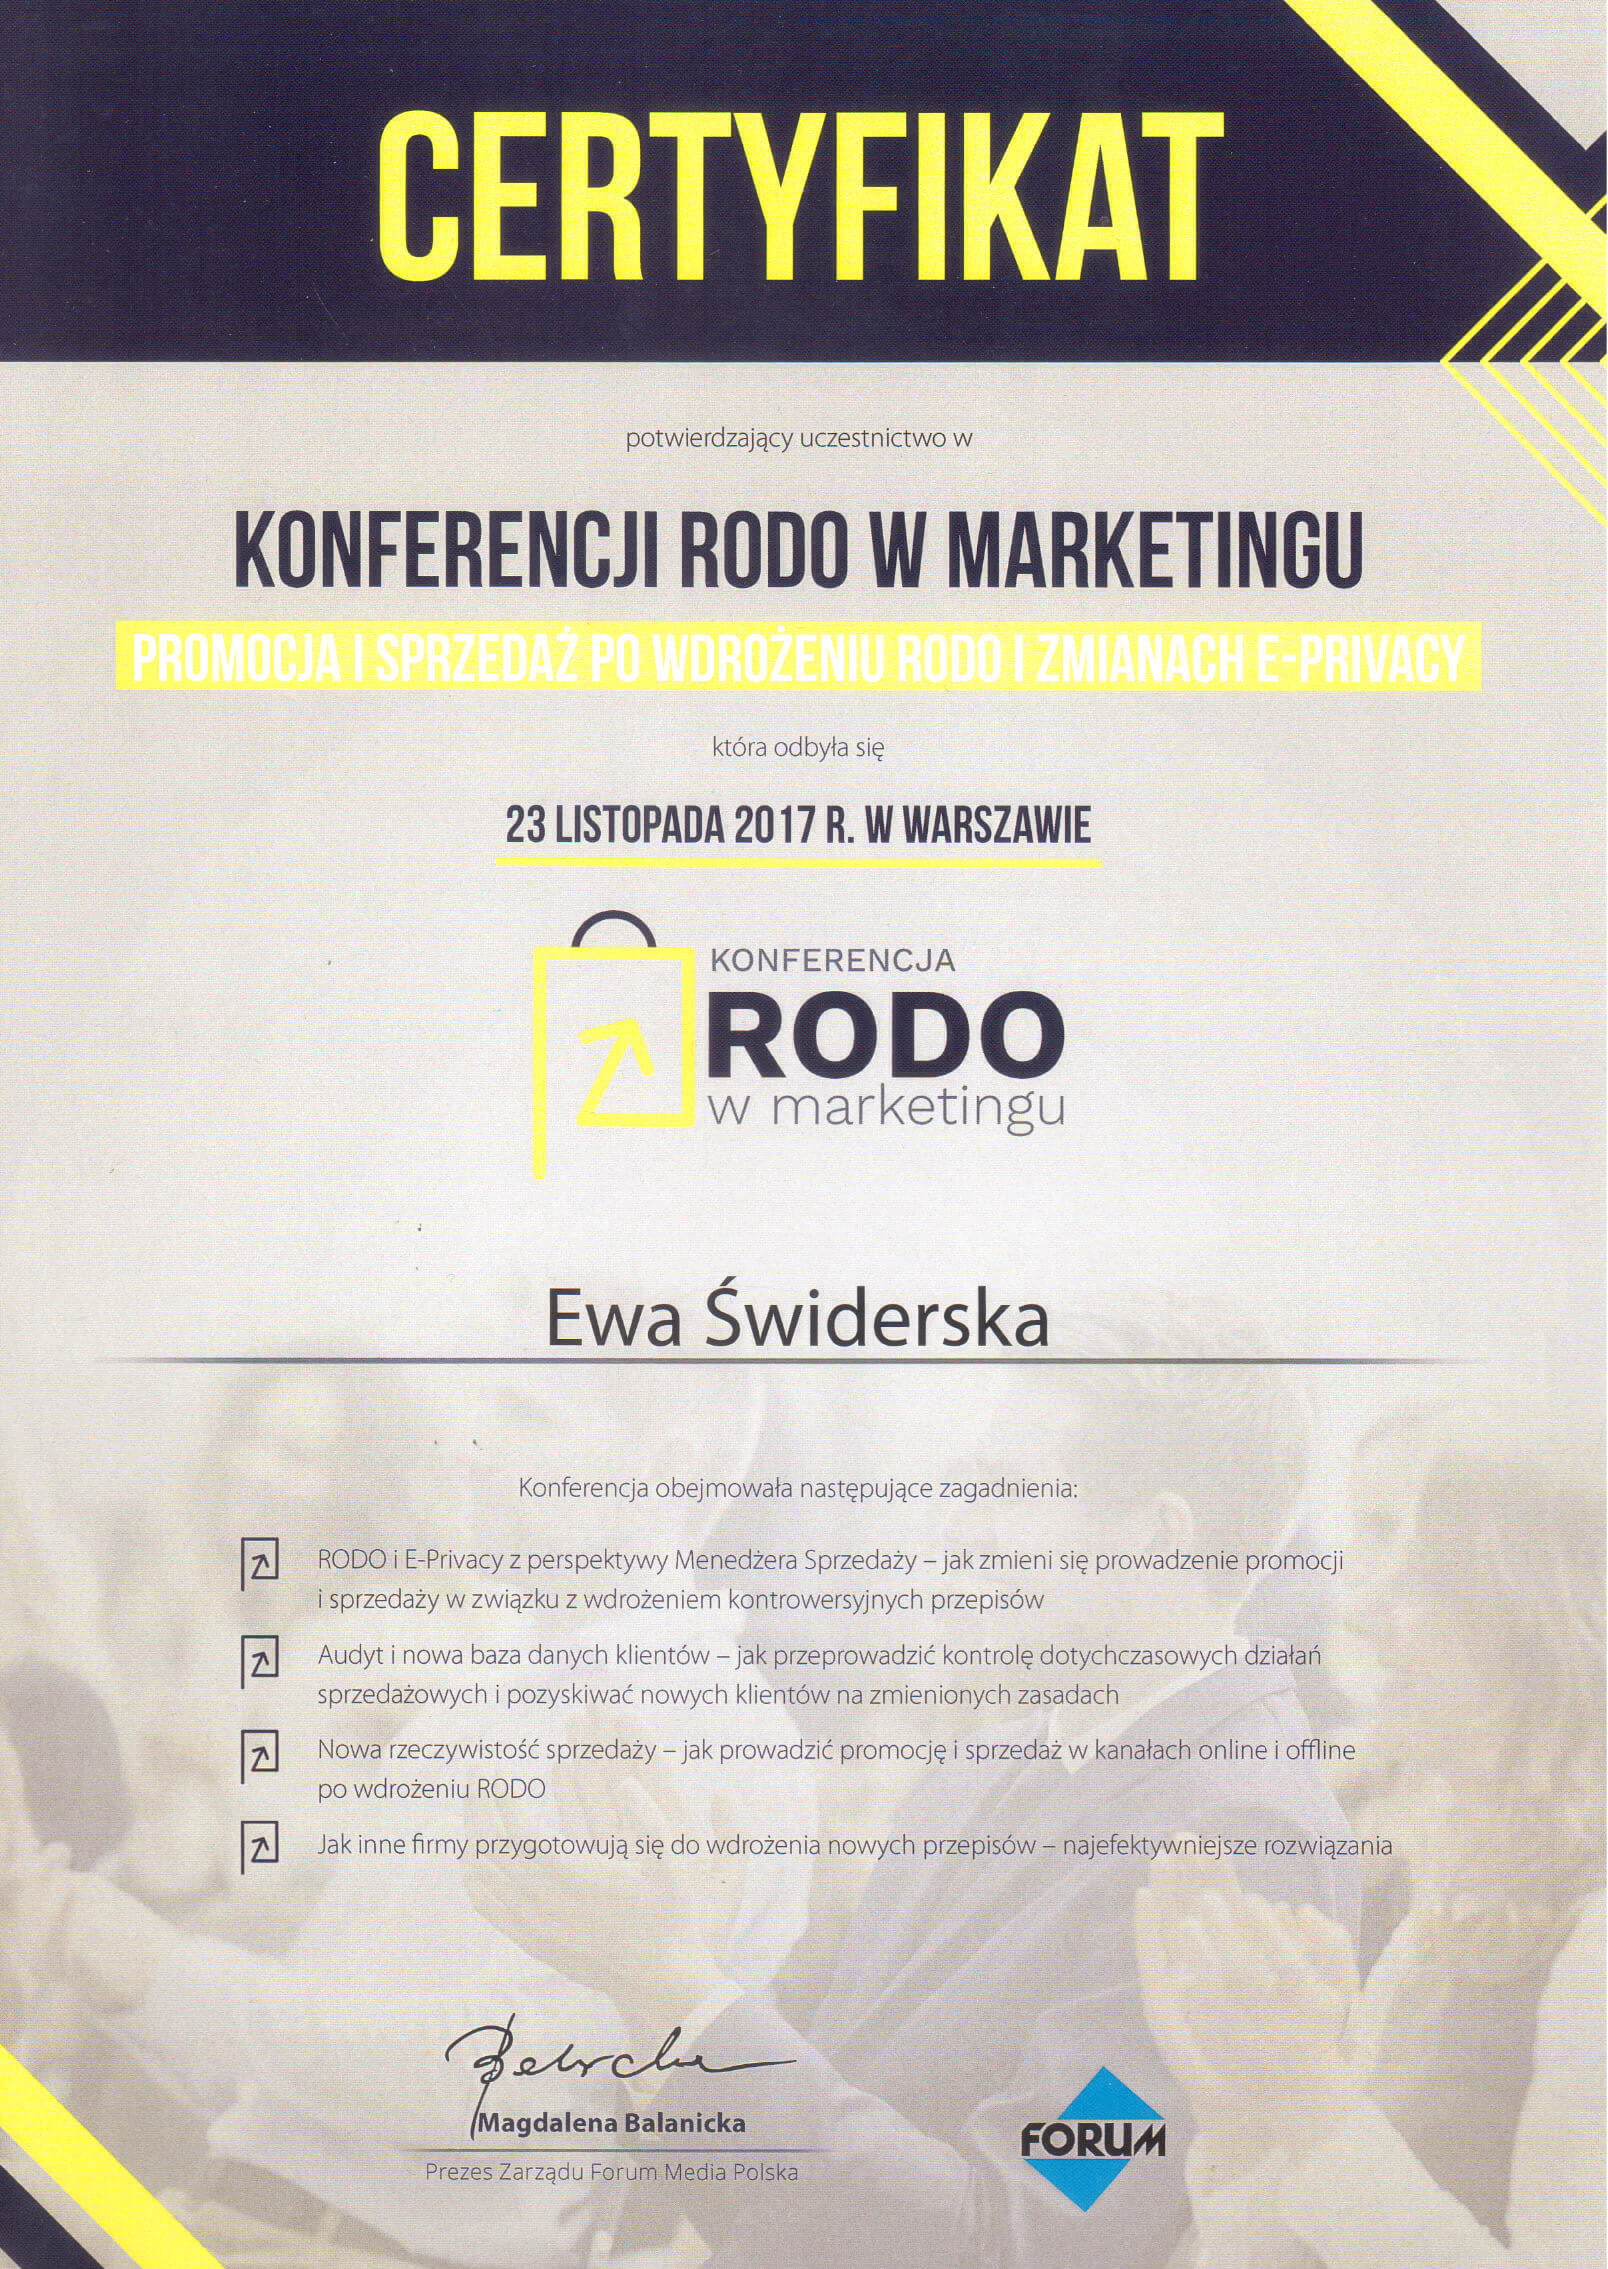 Certyfikat Rodo w marketingu